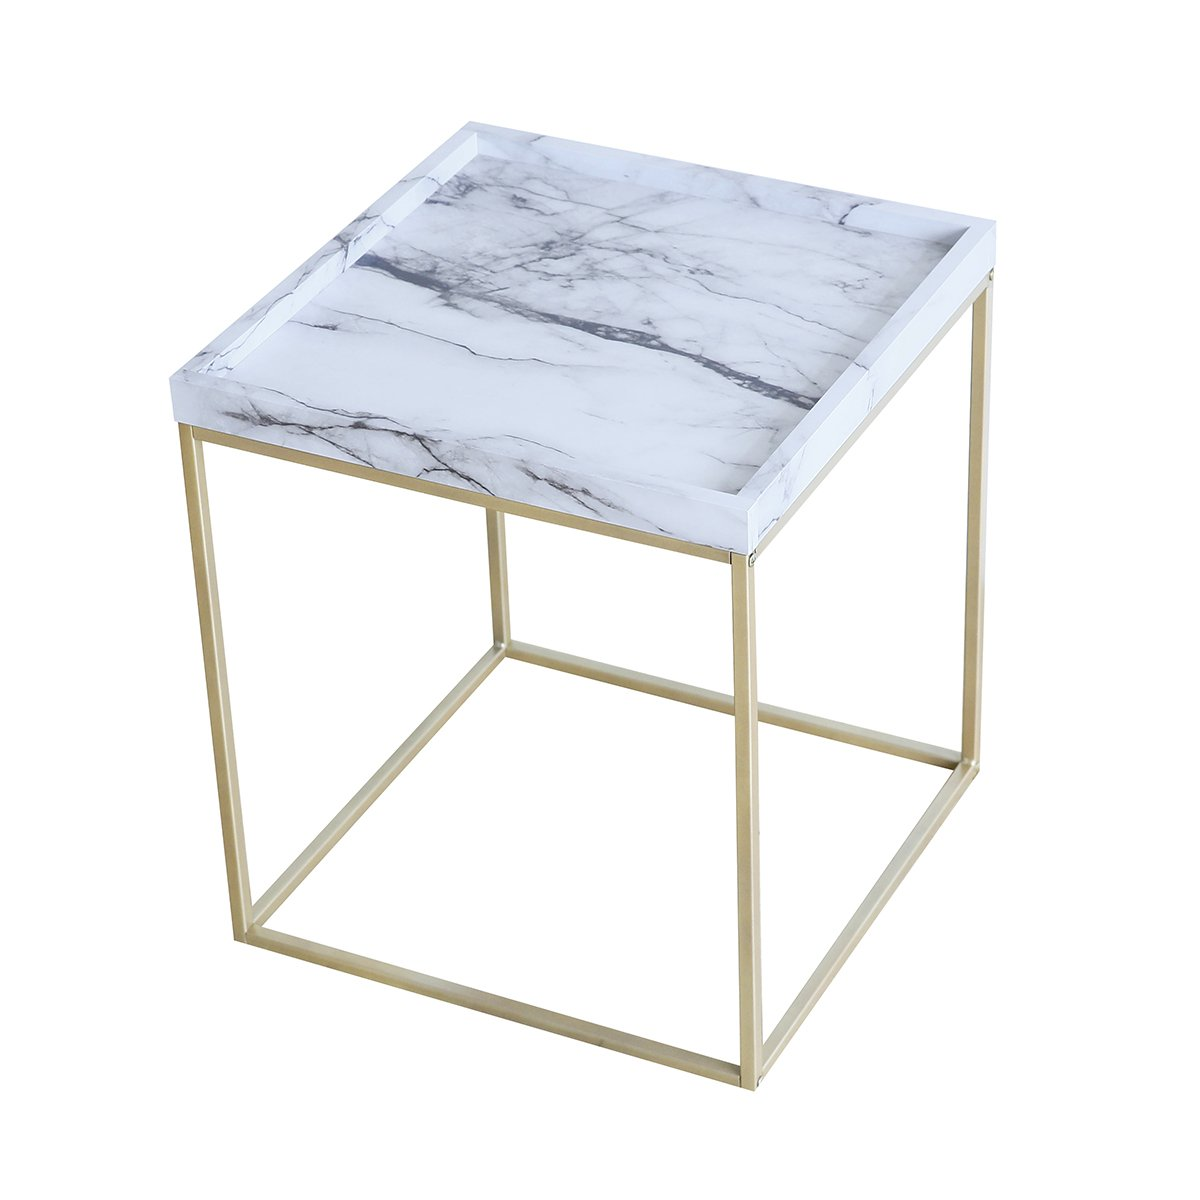 Tilly Lin Modern Accent Faux Marble Top End Table, Gold Legs Side Table, for Living Room, Bed Room, Black Metal Frame, Carrara